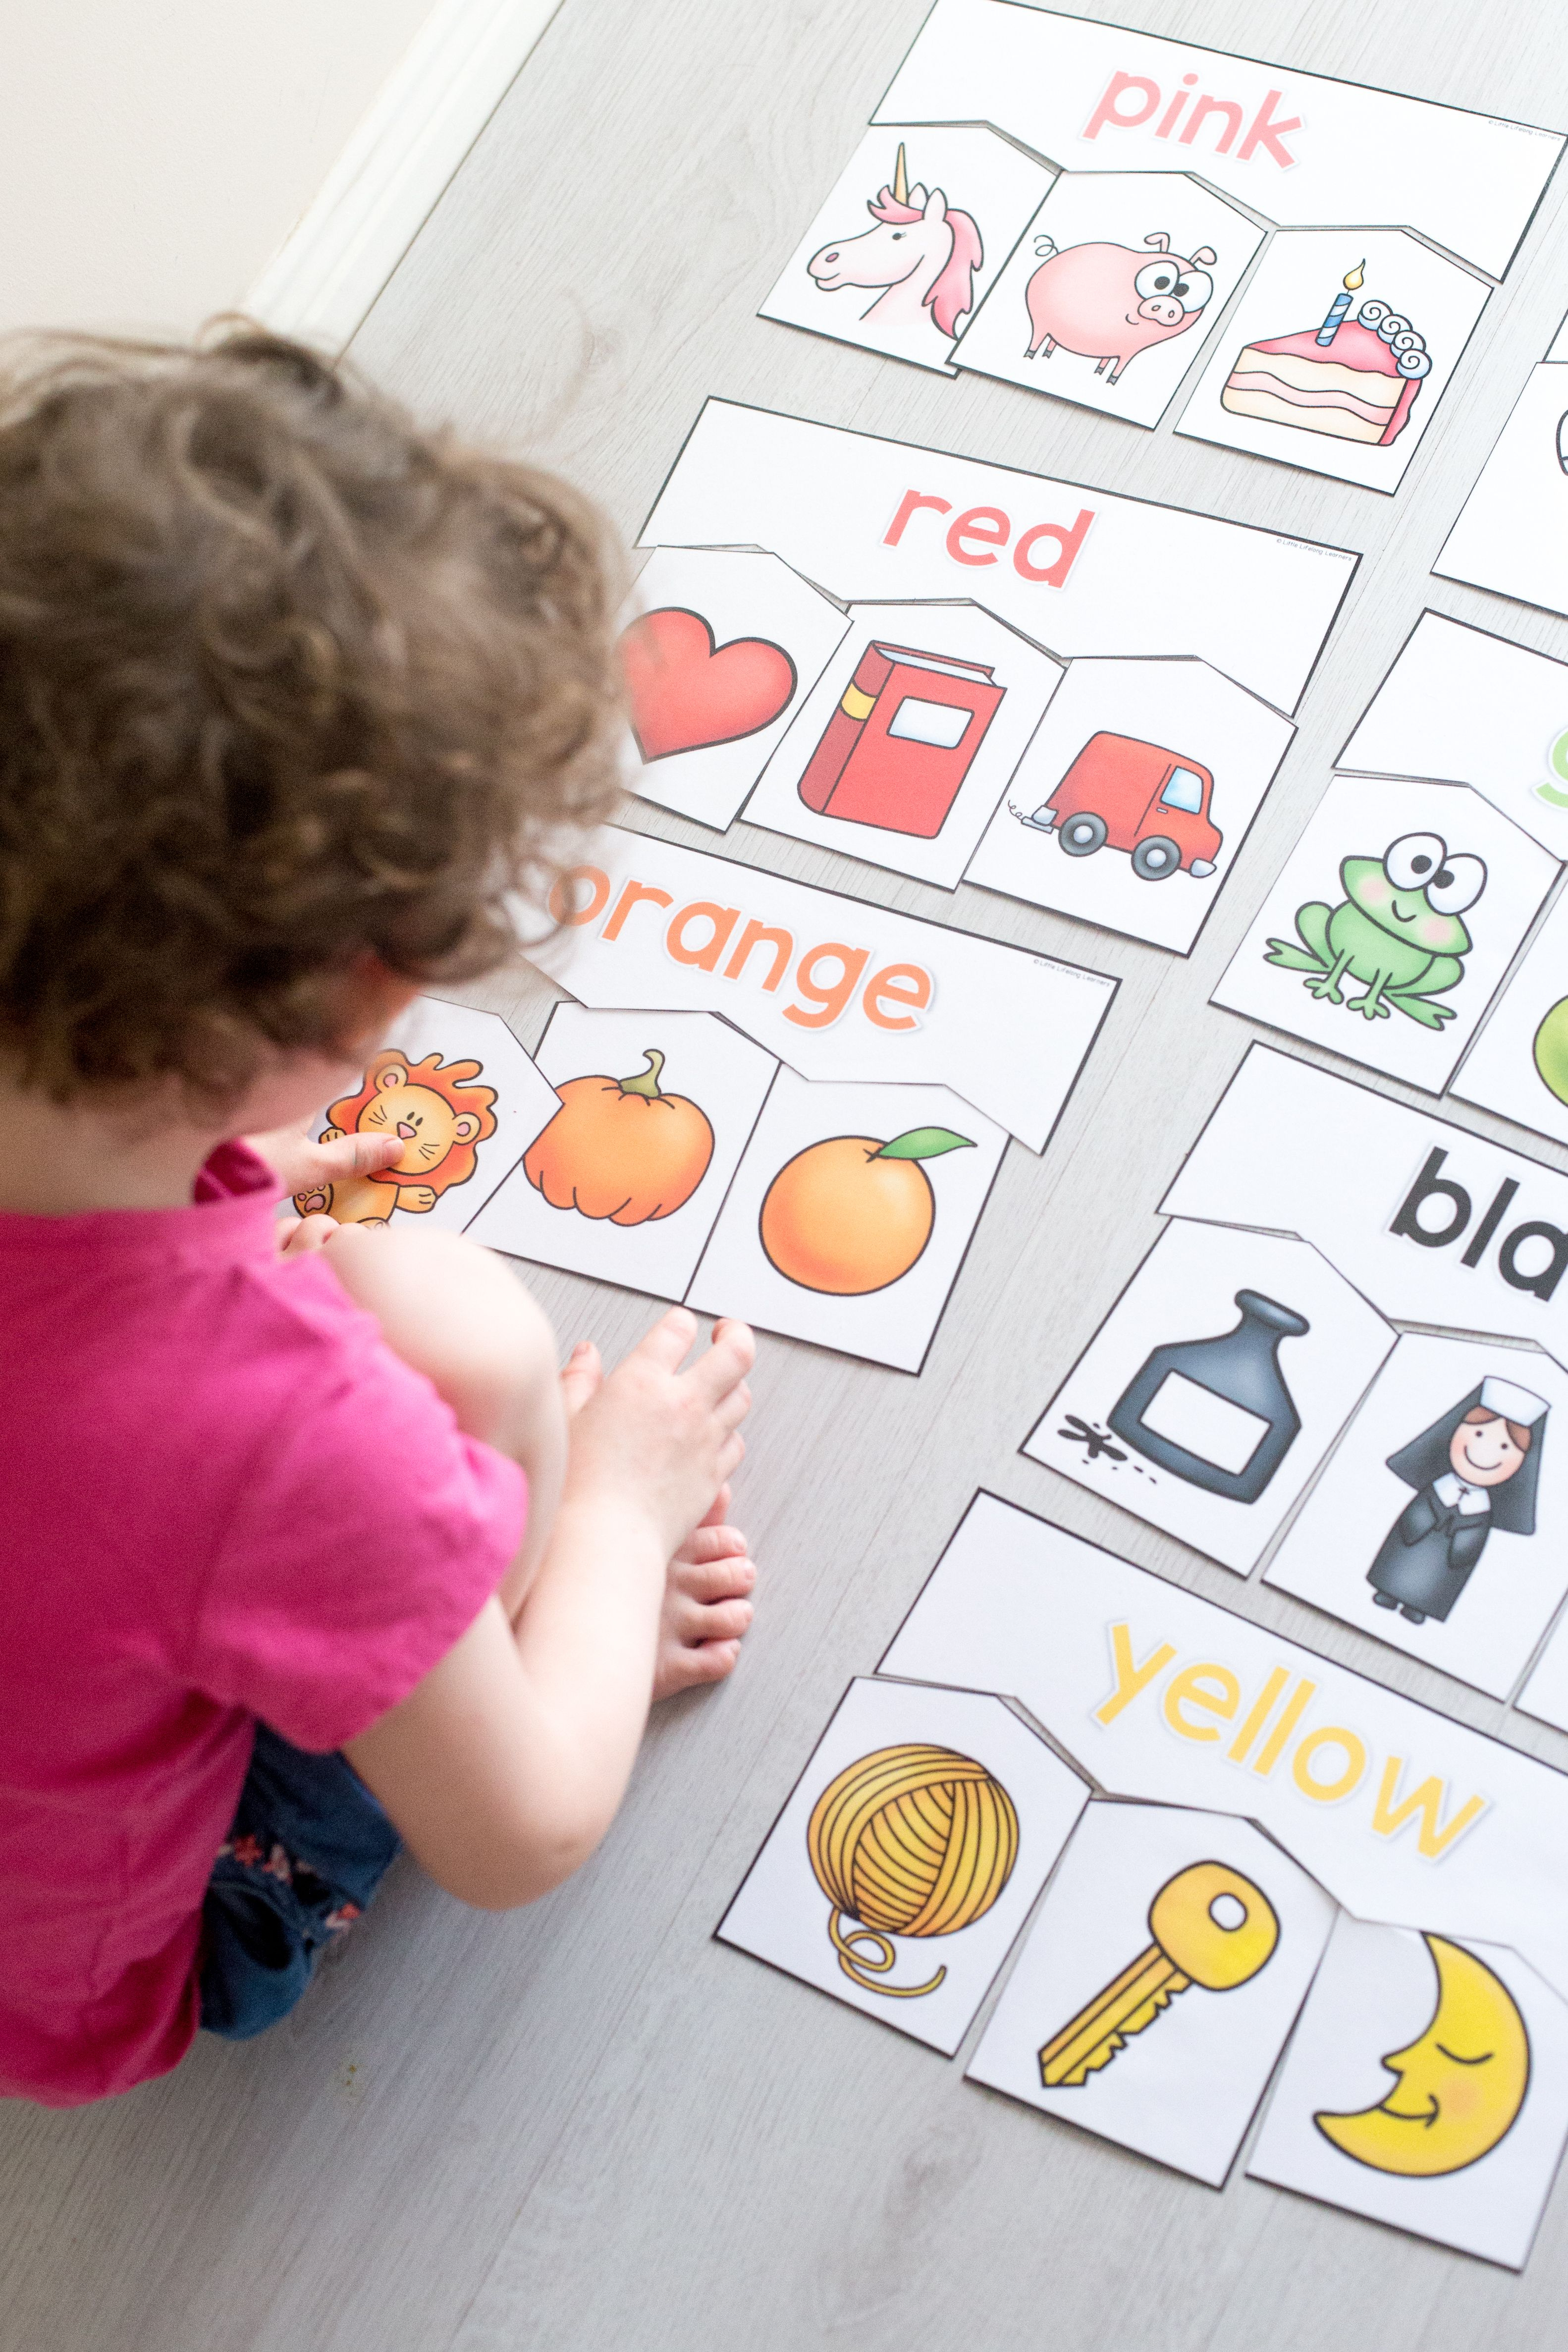 Colour Puzzles For Toddlers And Preschoolers | Kids | Puzzles For - Printable Puzzles For 2 Year Olds